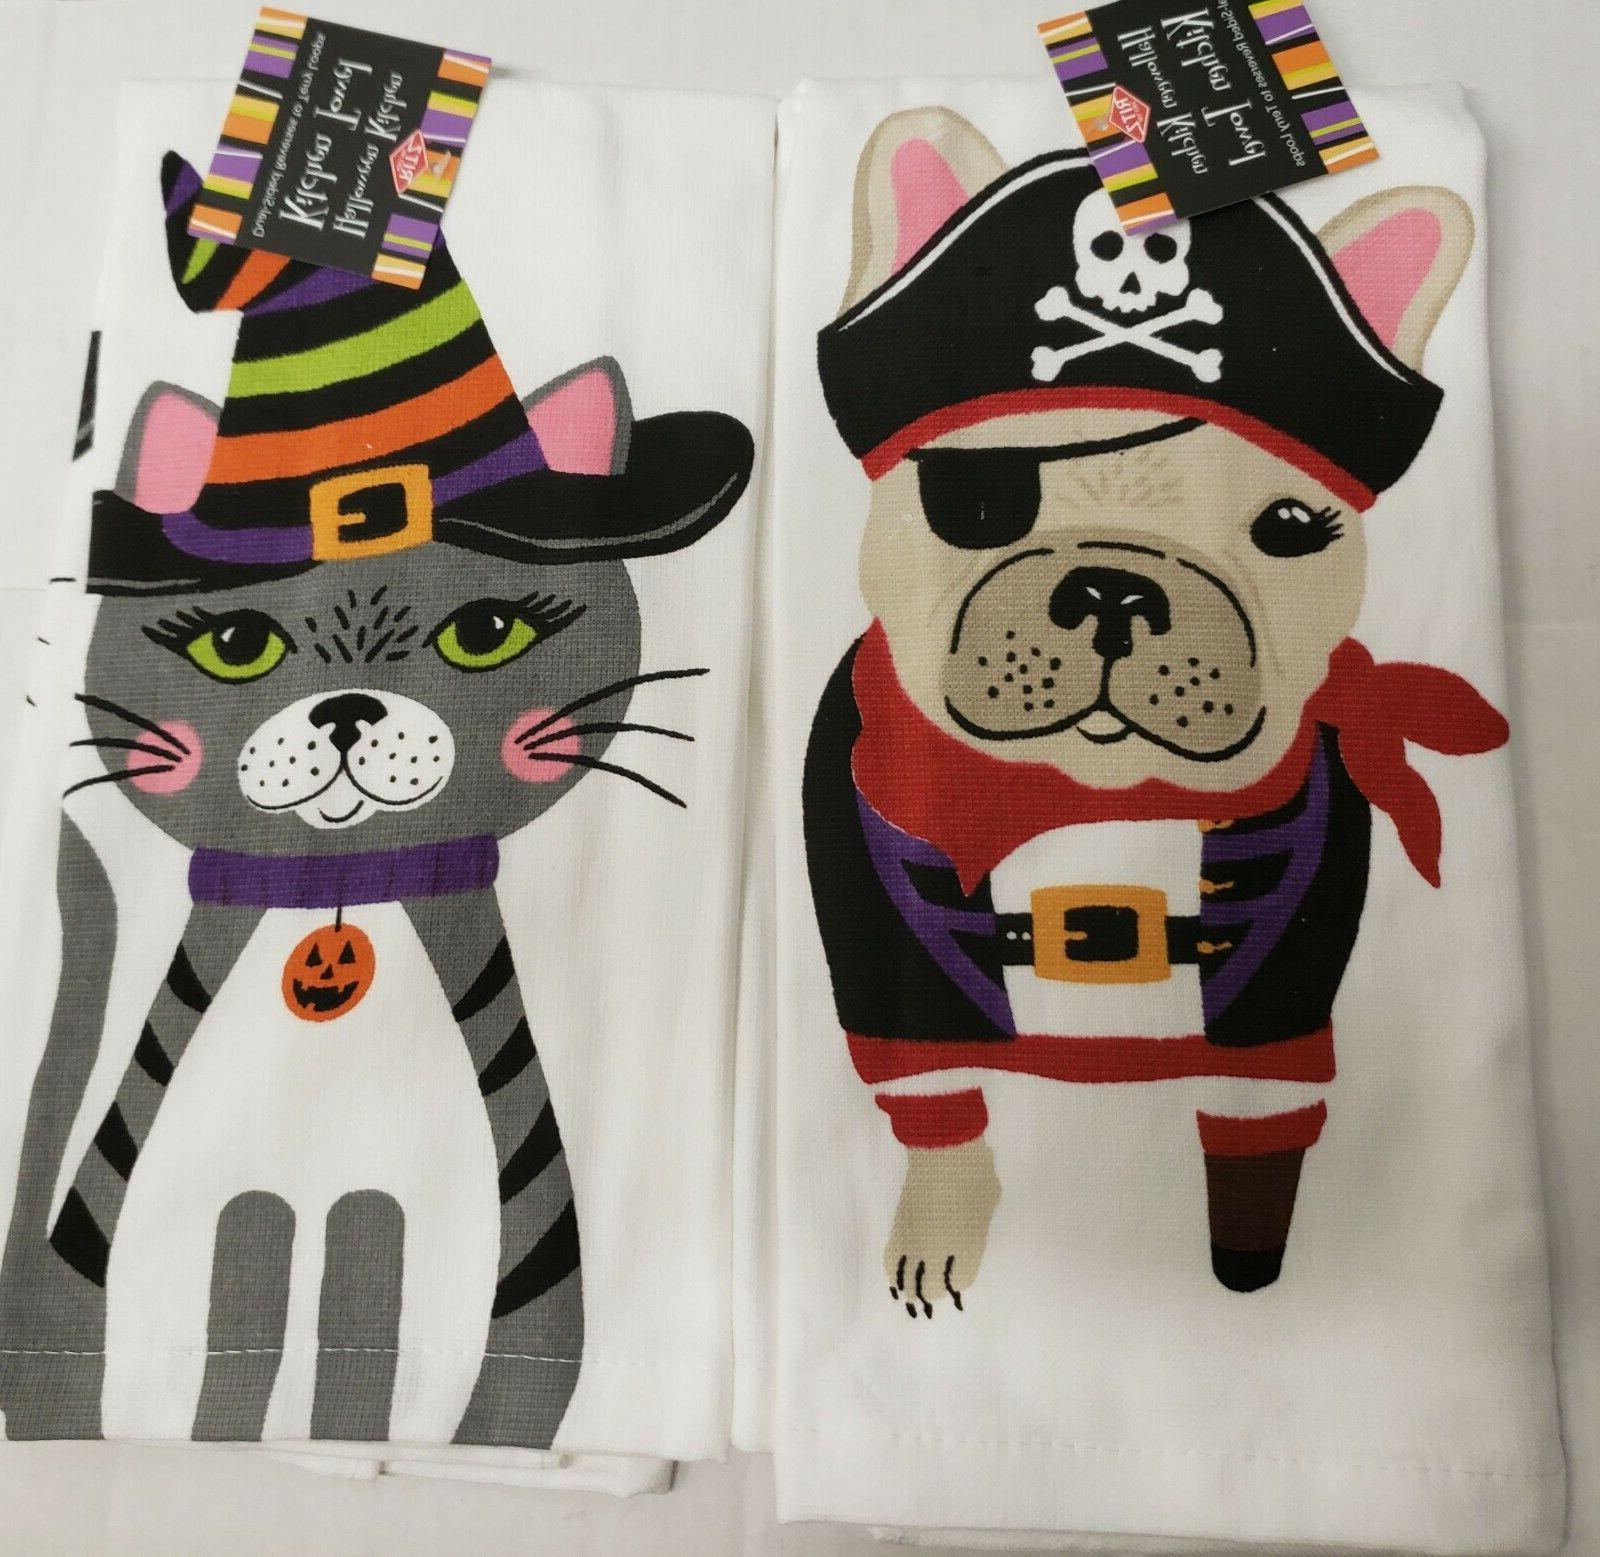 2 different cotton kitchen terry towels 15